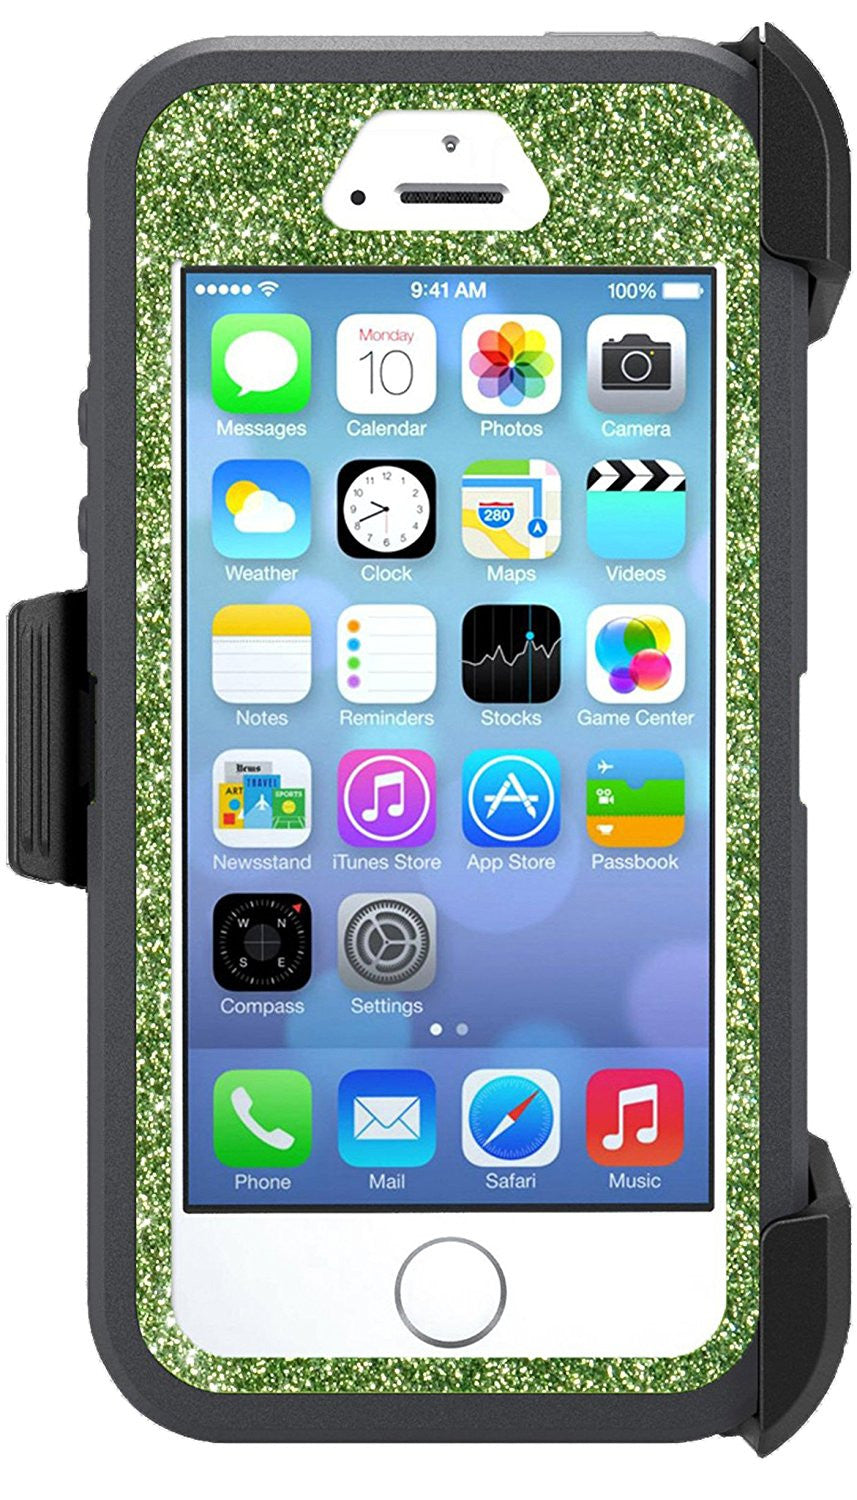 sale retailer 6fa2f 55b94 OtterBox Defender Series Case for iPhone 5s - Custom Glitter Case for  iPhone 5s - Dark Grey/Lime Green